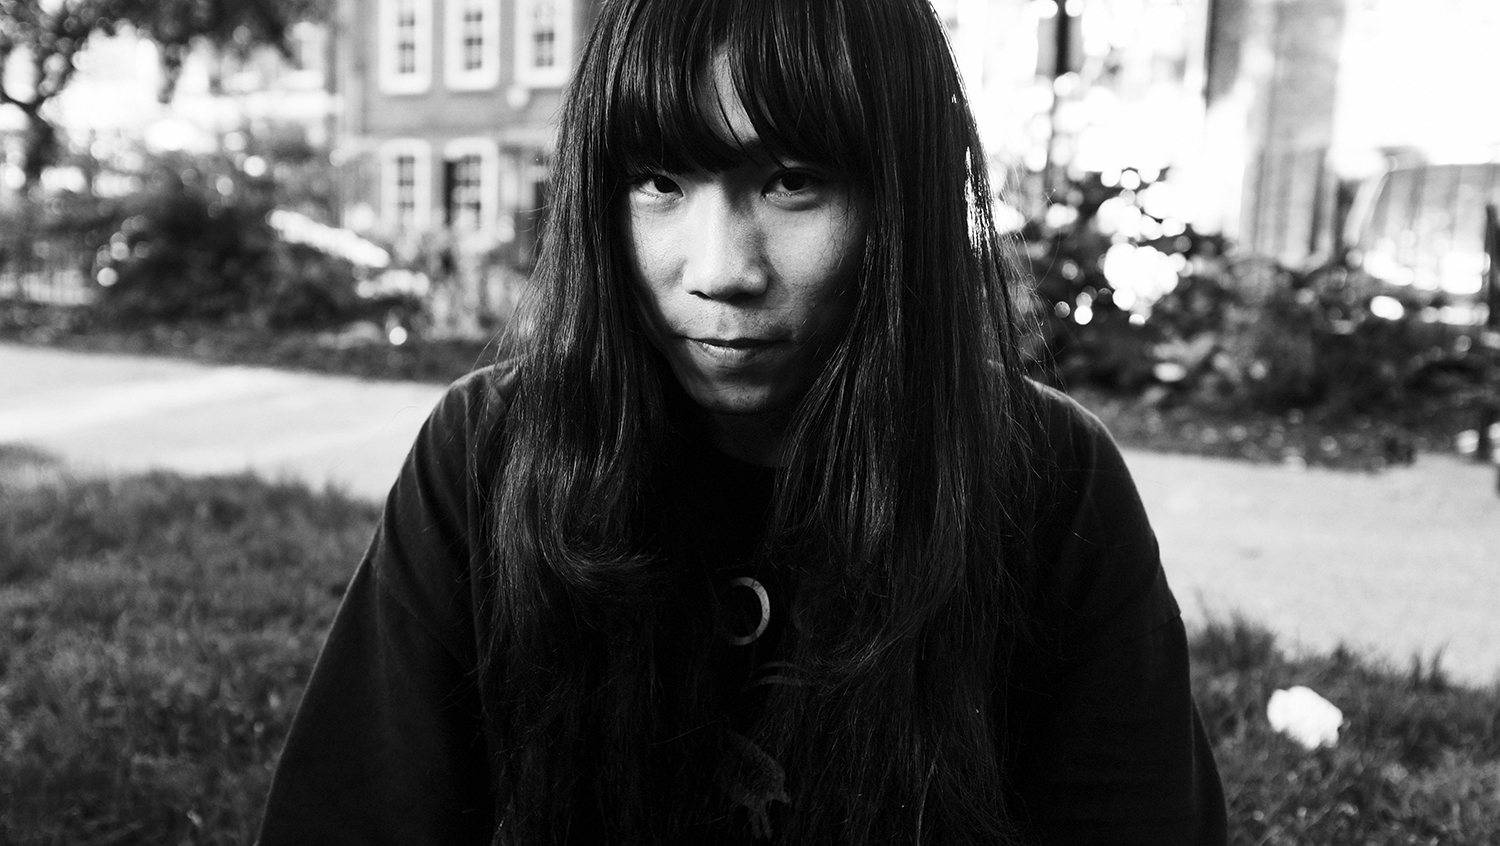 Yuki (Bo Ningen) / May 26 2017 / London, UK.